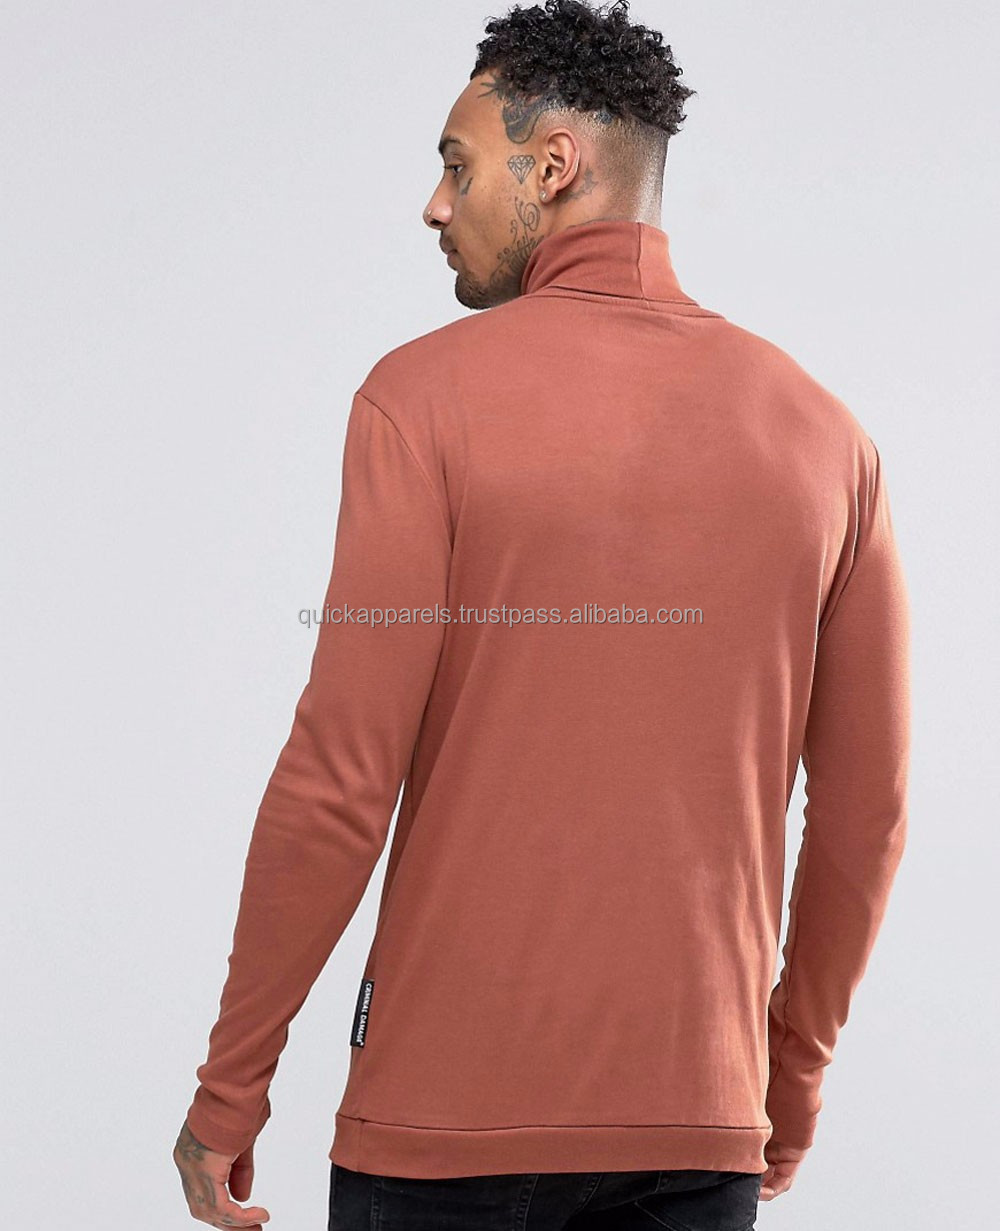 design wholesale custom long sleeve t shirt high quality long sleeve polo t shirt for men cheap